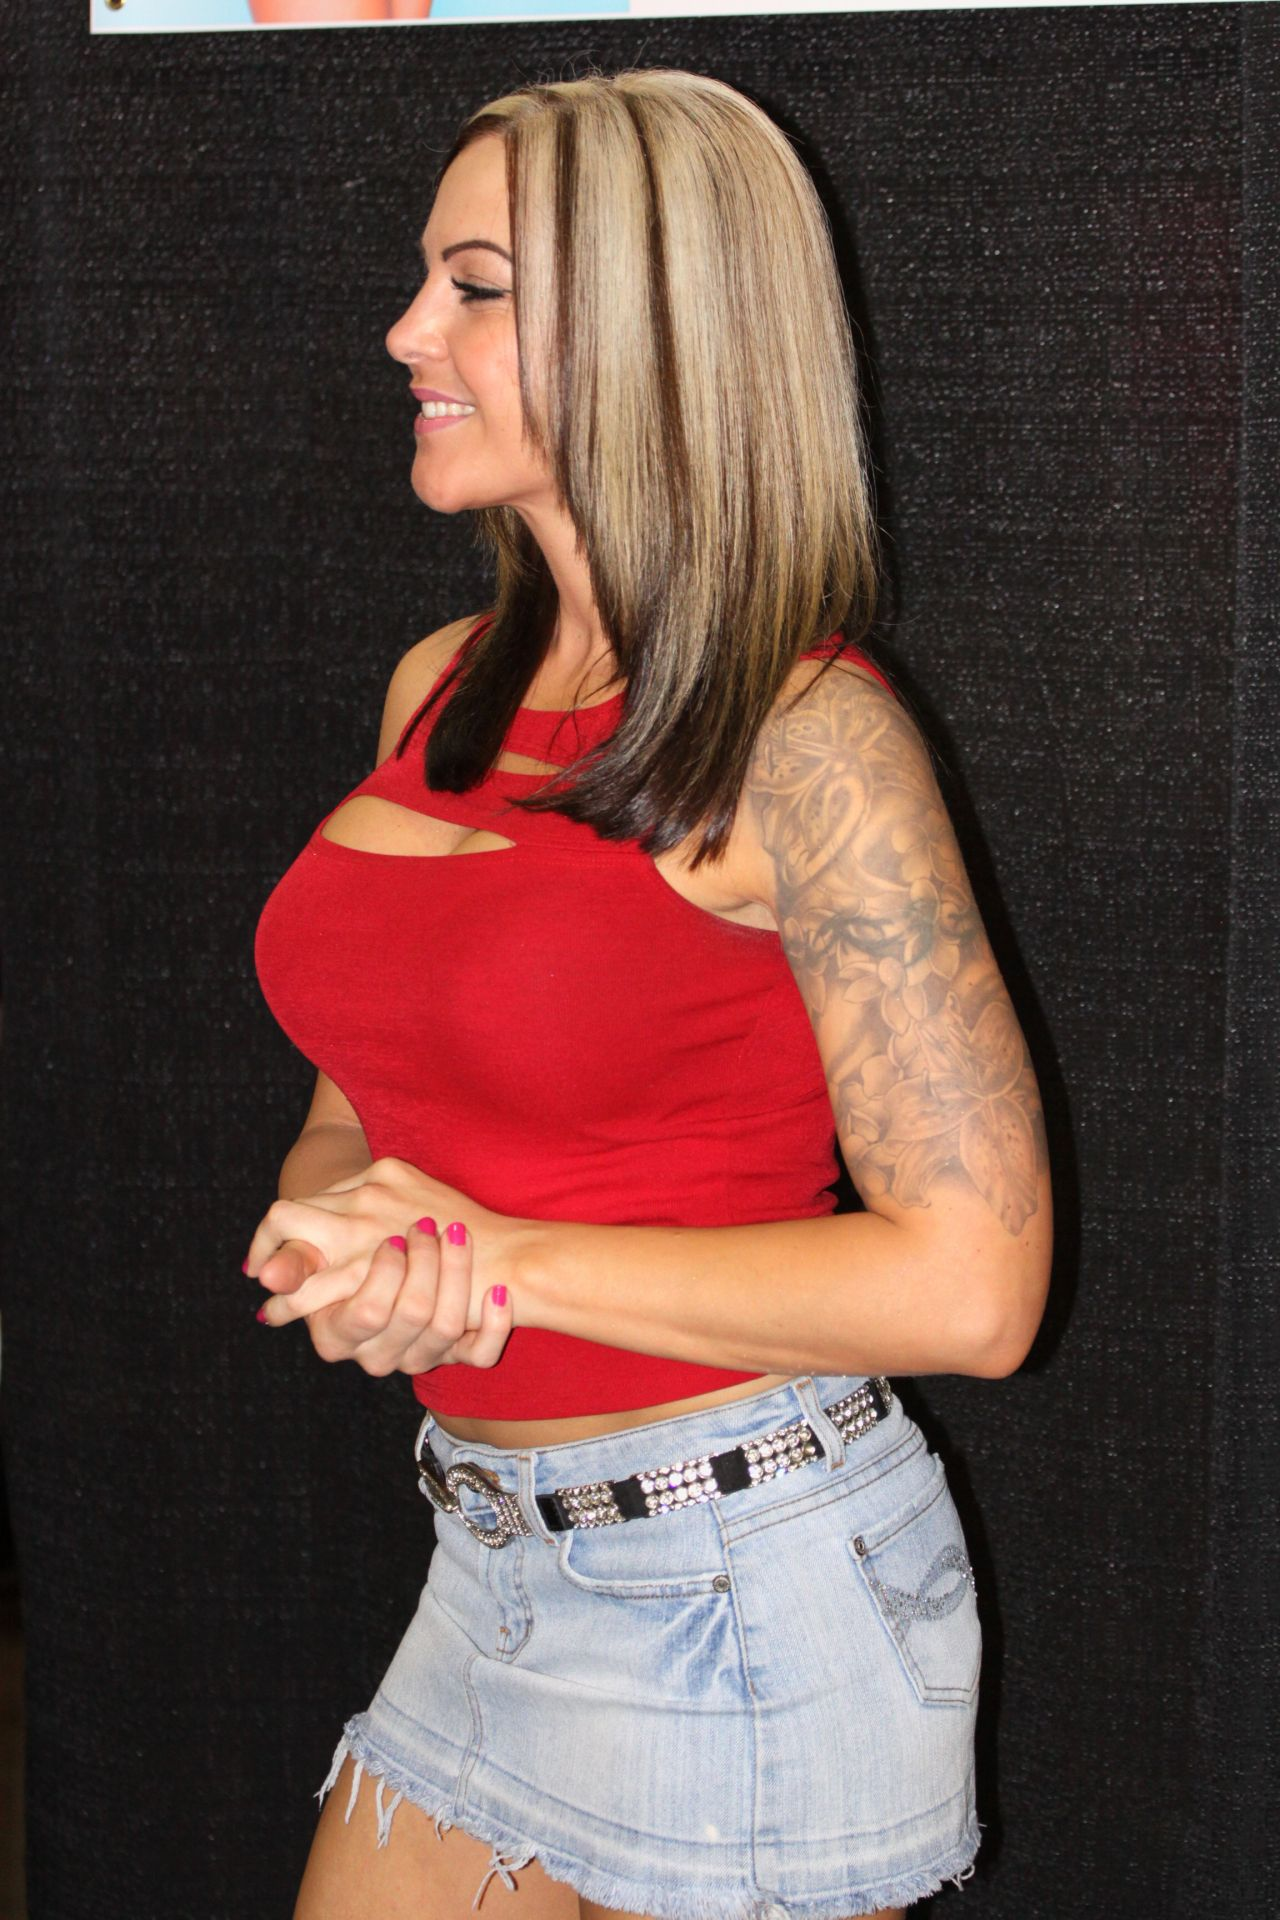 Celebrity Velvet Sky nudes (32 photos), Tits, Paparazzi, Boobs, bra 2018